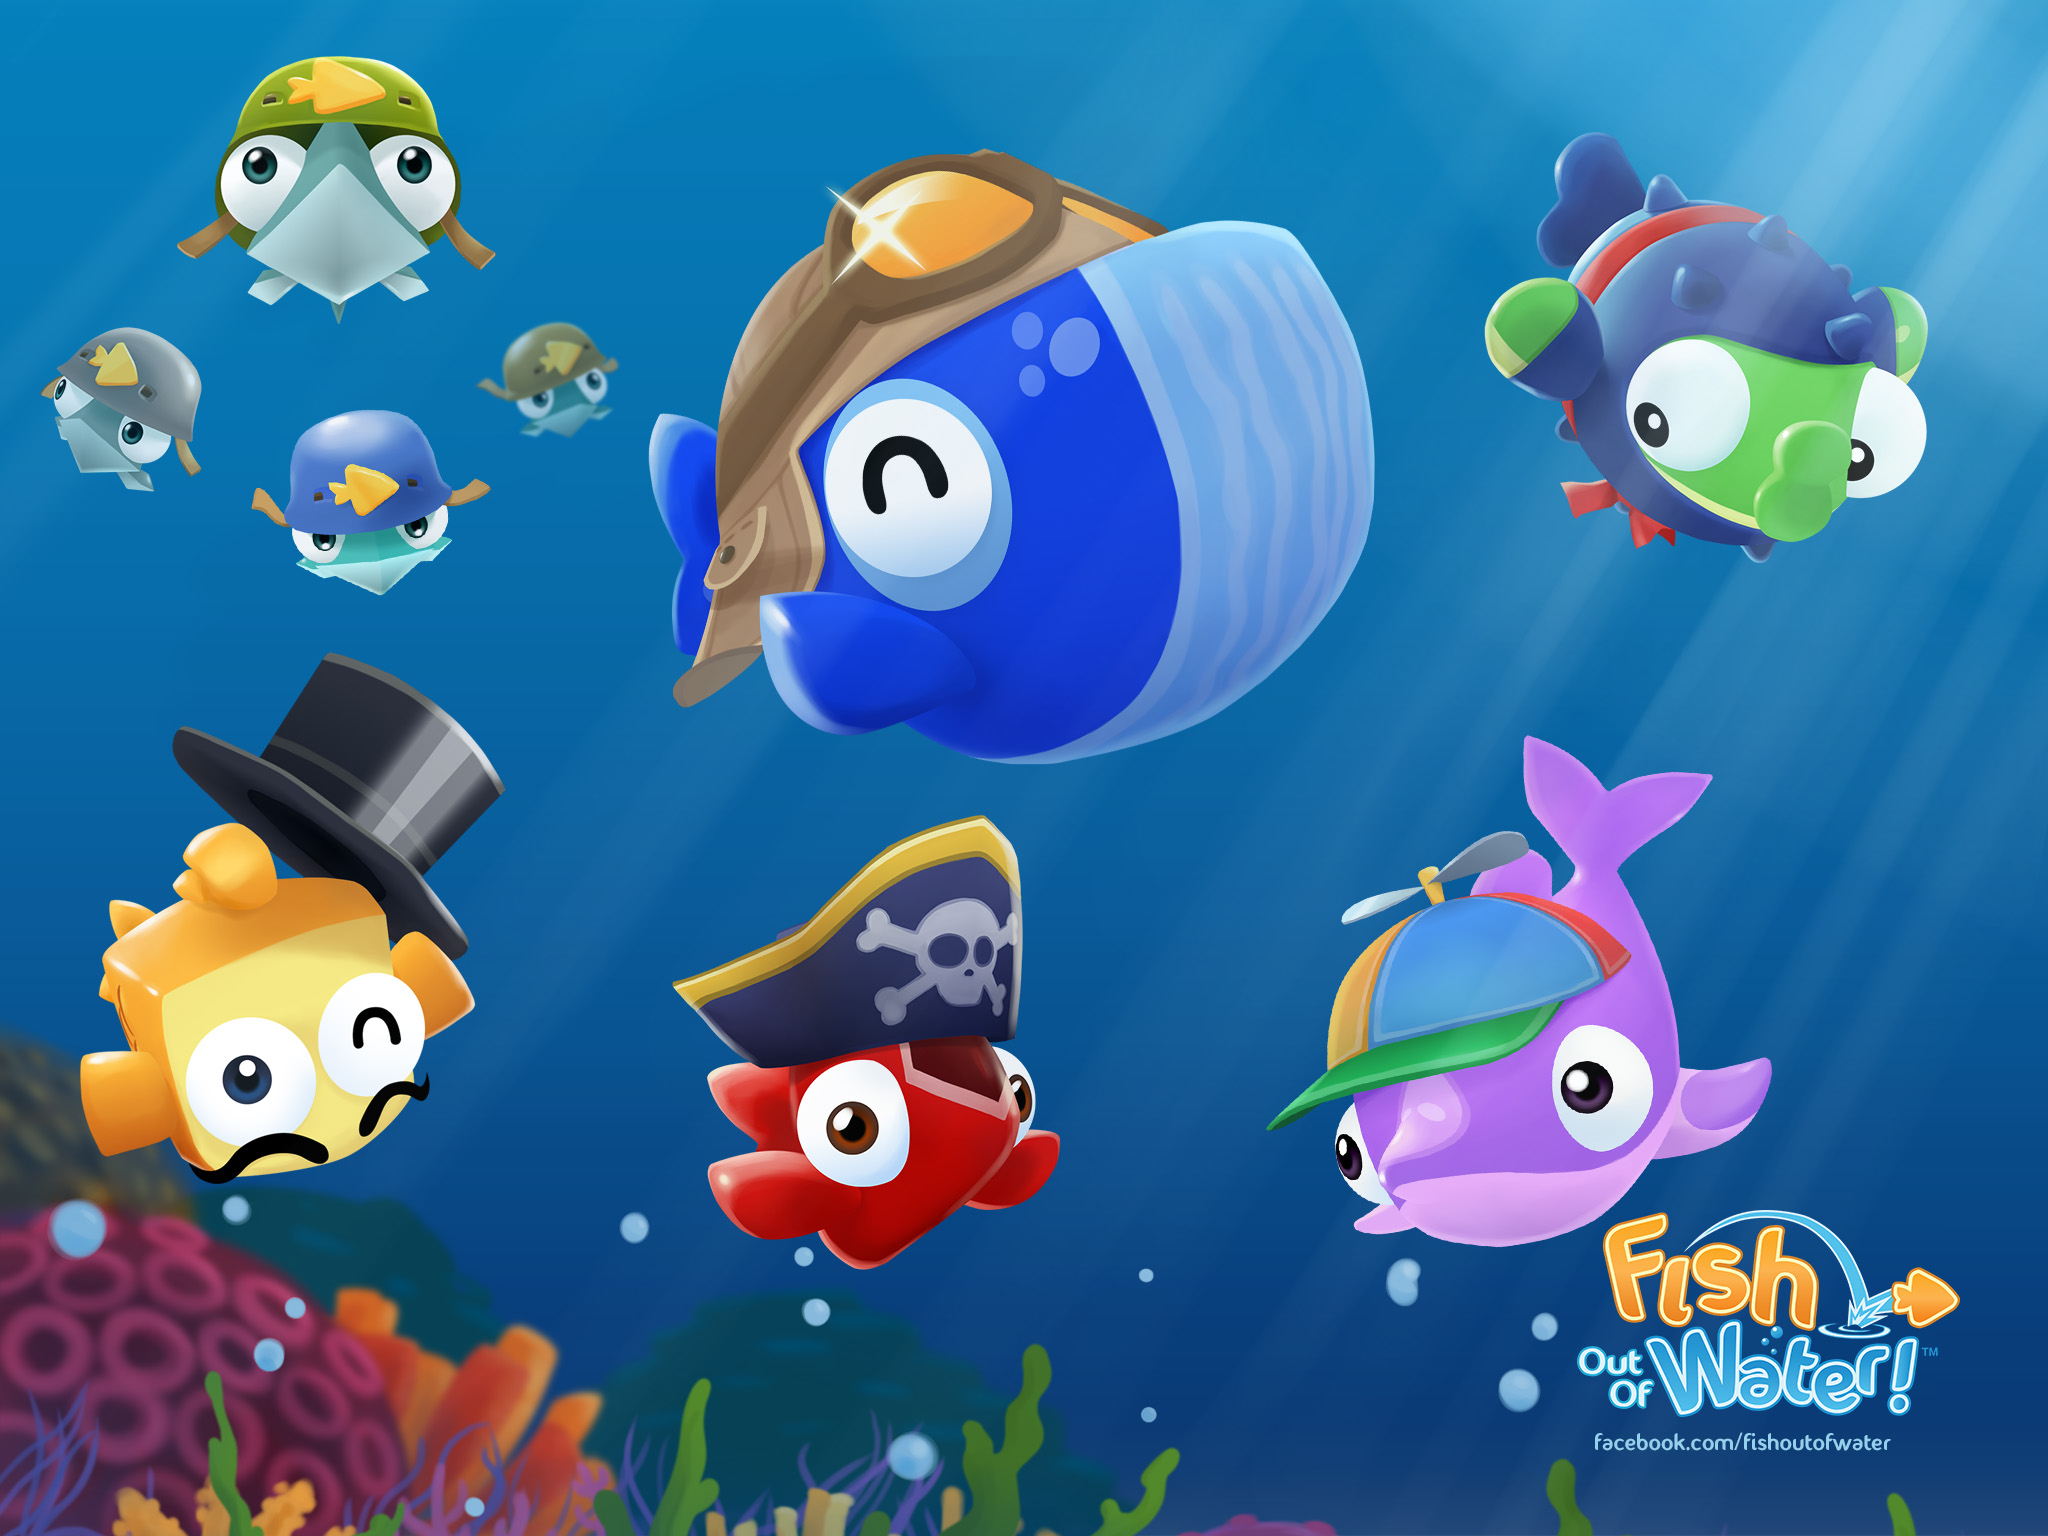 Wallpapers fish out of water the fun and colorful fish for Gold fish game